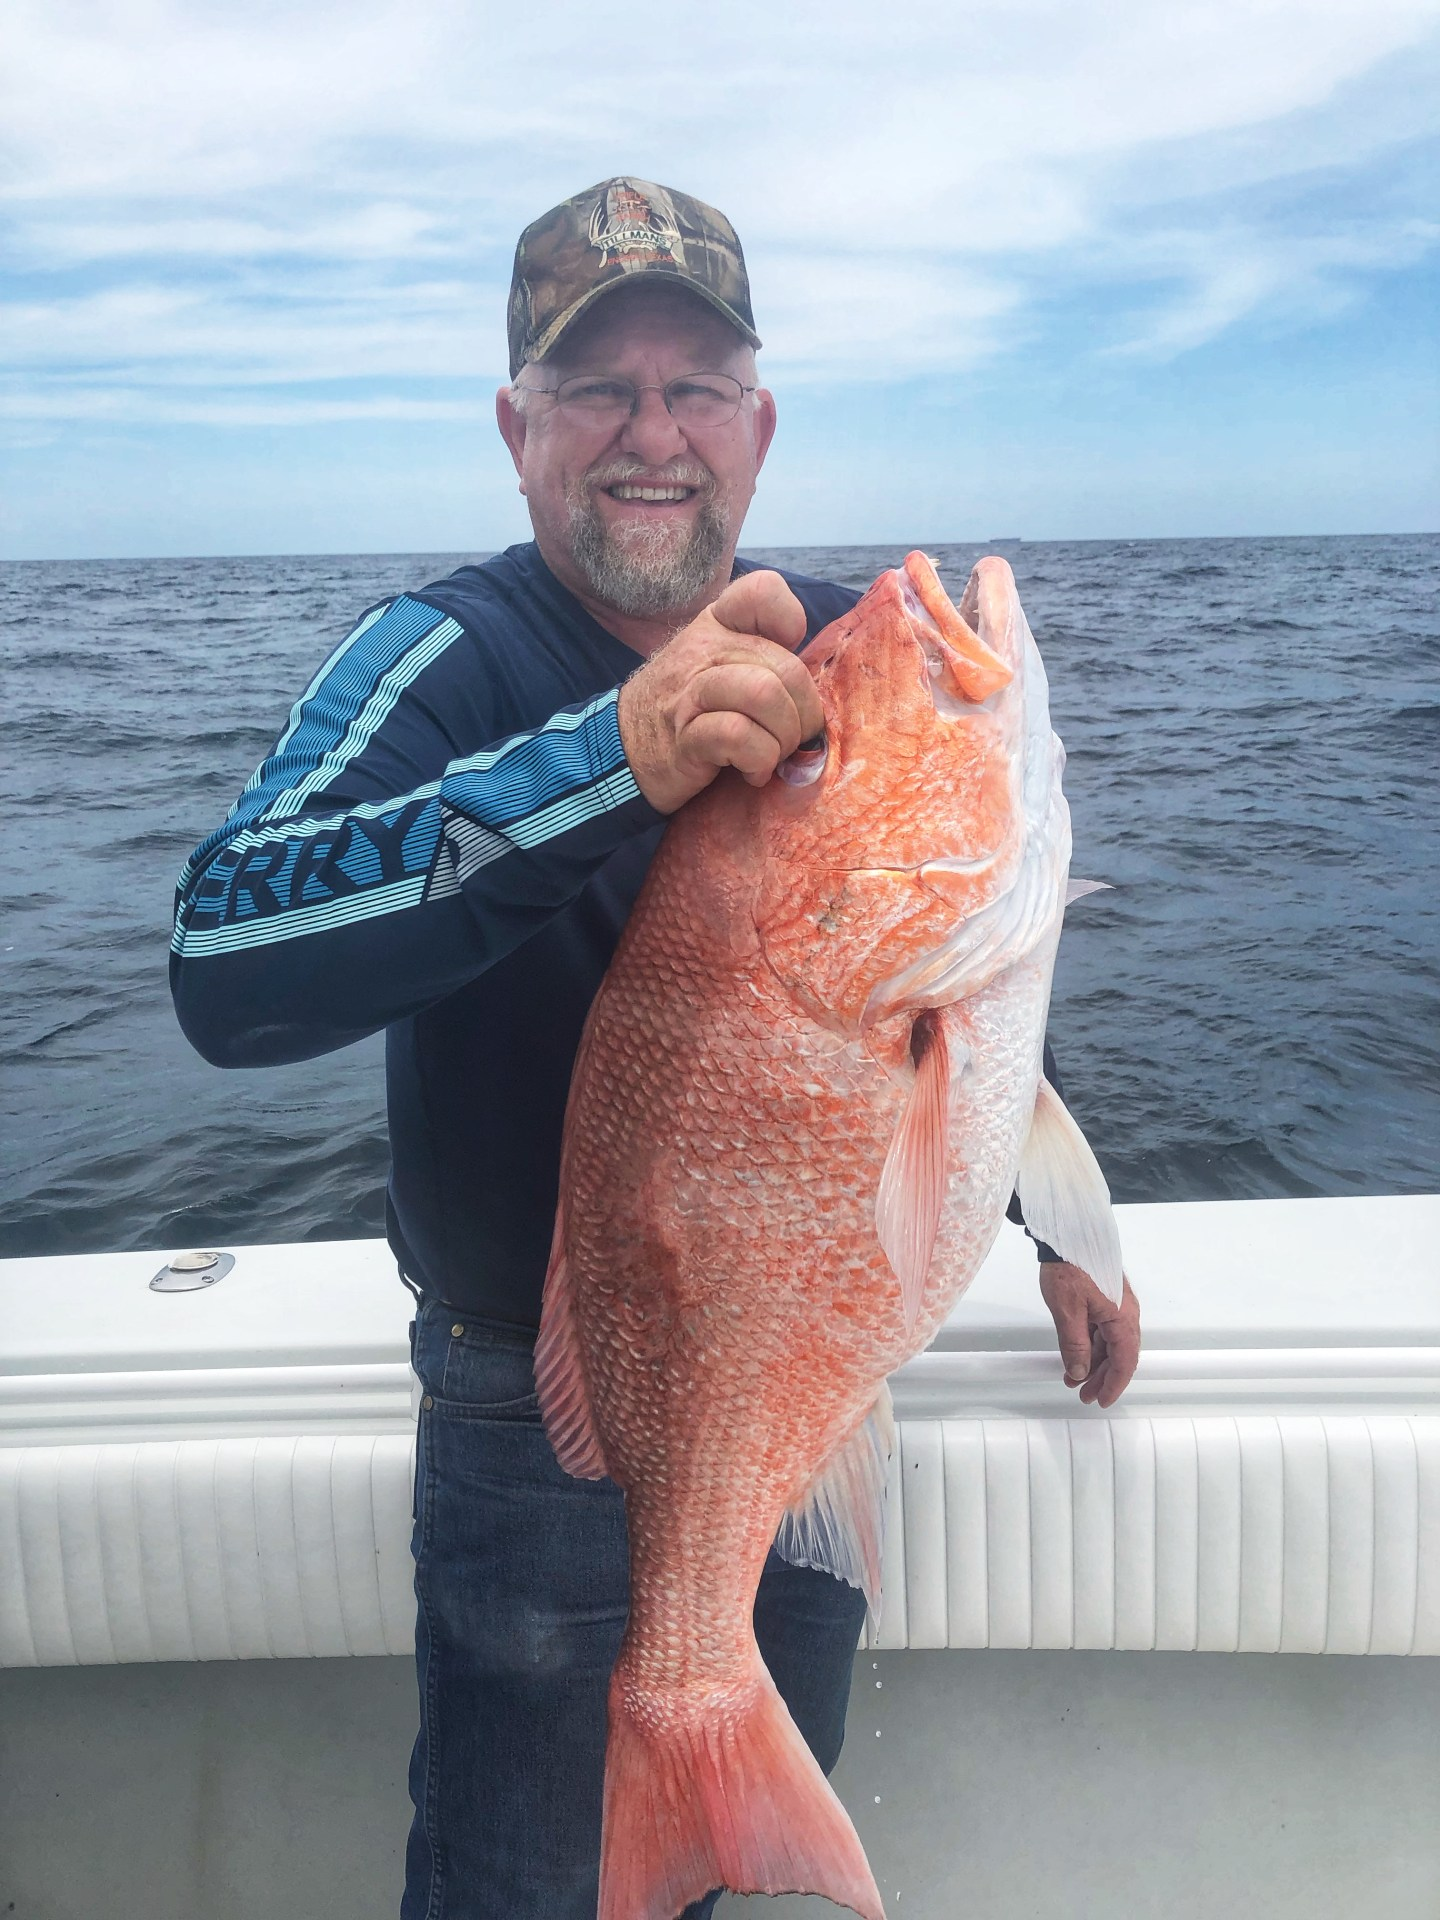 BIG-SNAPPER-CHARTER-FISHING-GULF-OF-MEXICO-2019